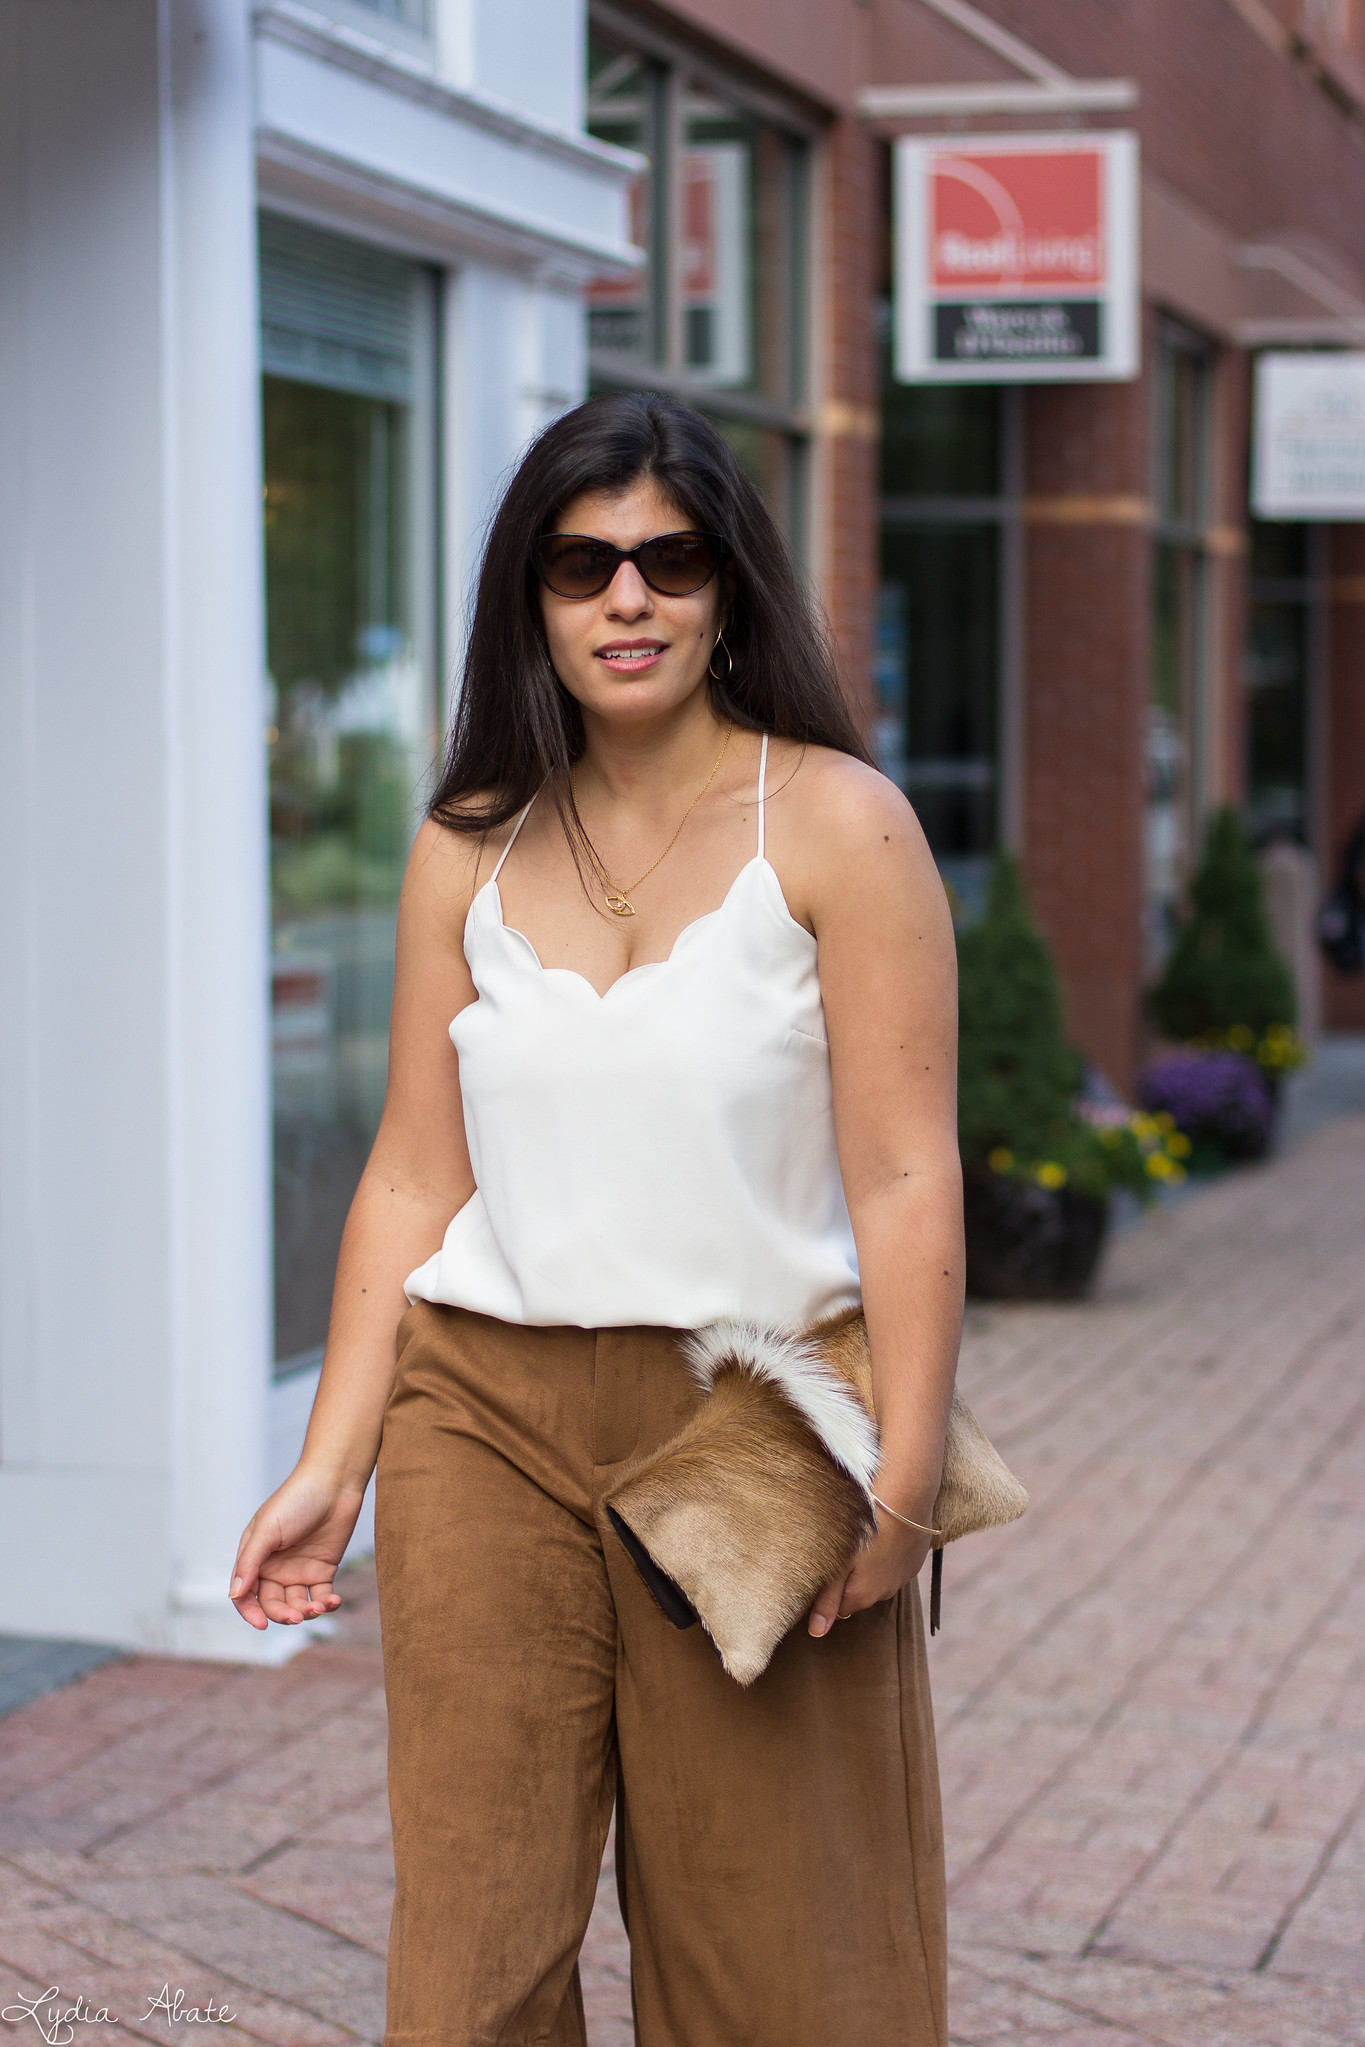 Cream Scalloped Cami, Brown Suede Culottes, Springbok Clutch-15.jpg